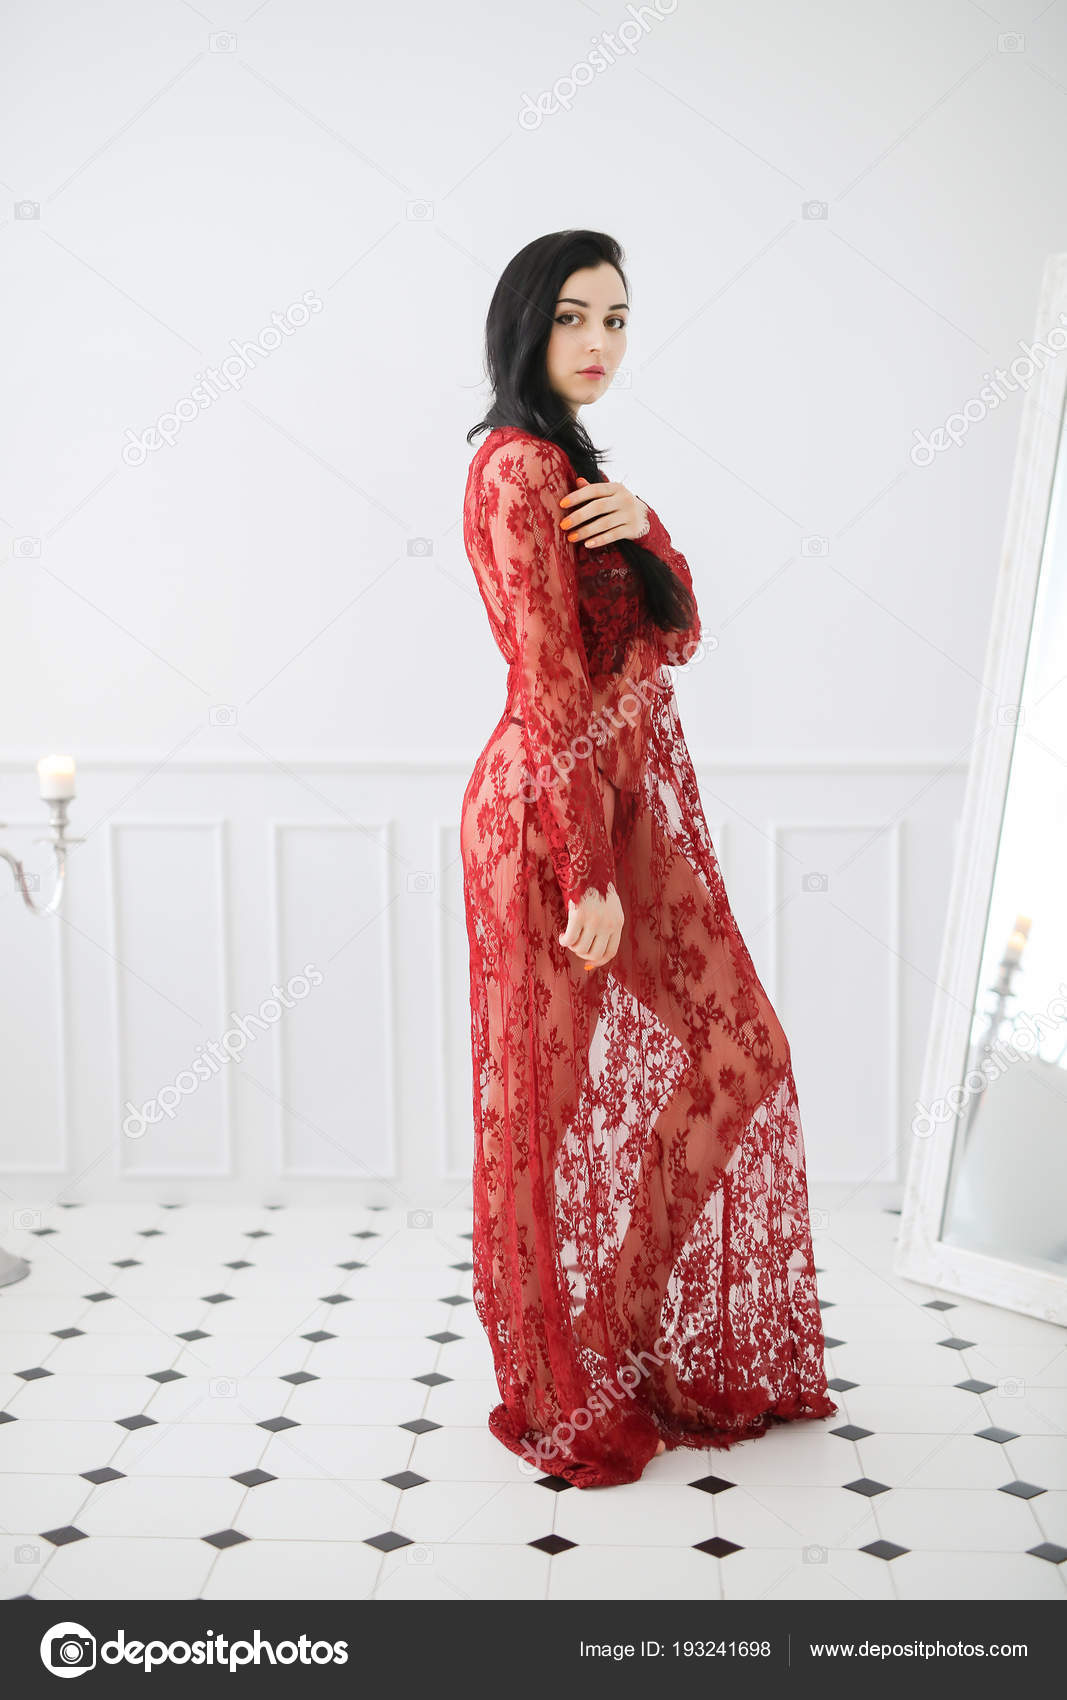 9d14dc2c35 Young Woman Red Lace Dress Posing Bathroom — Stock Photo ...